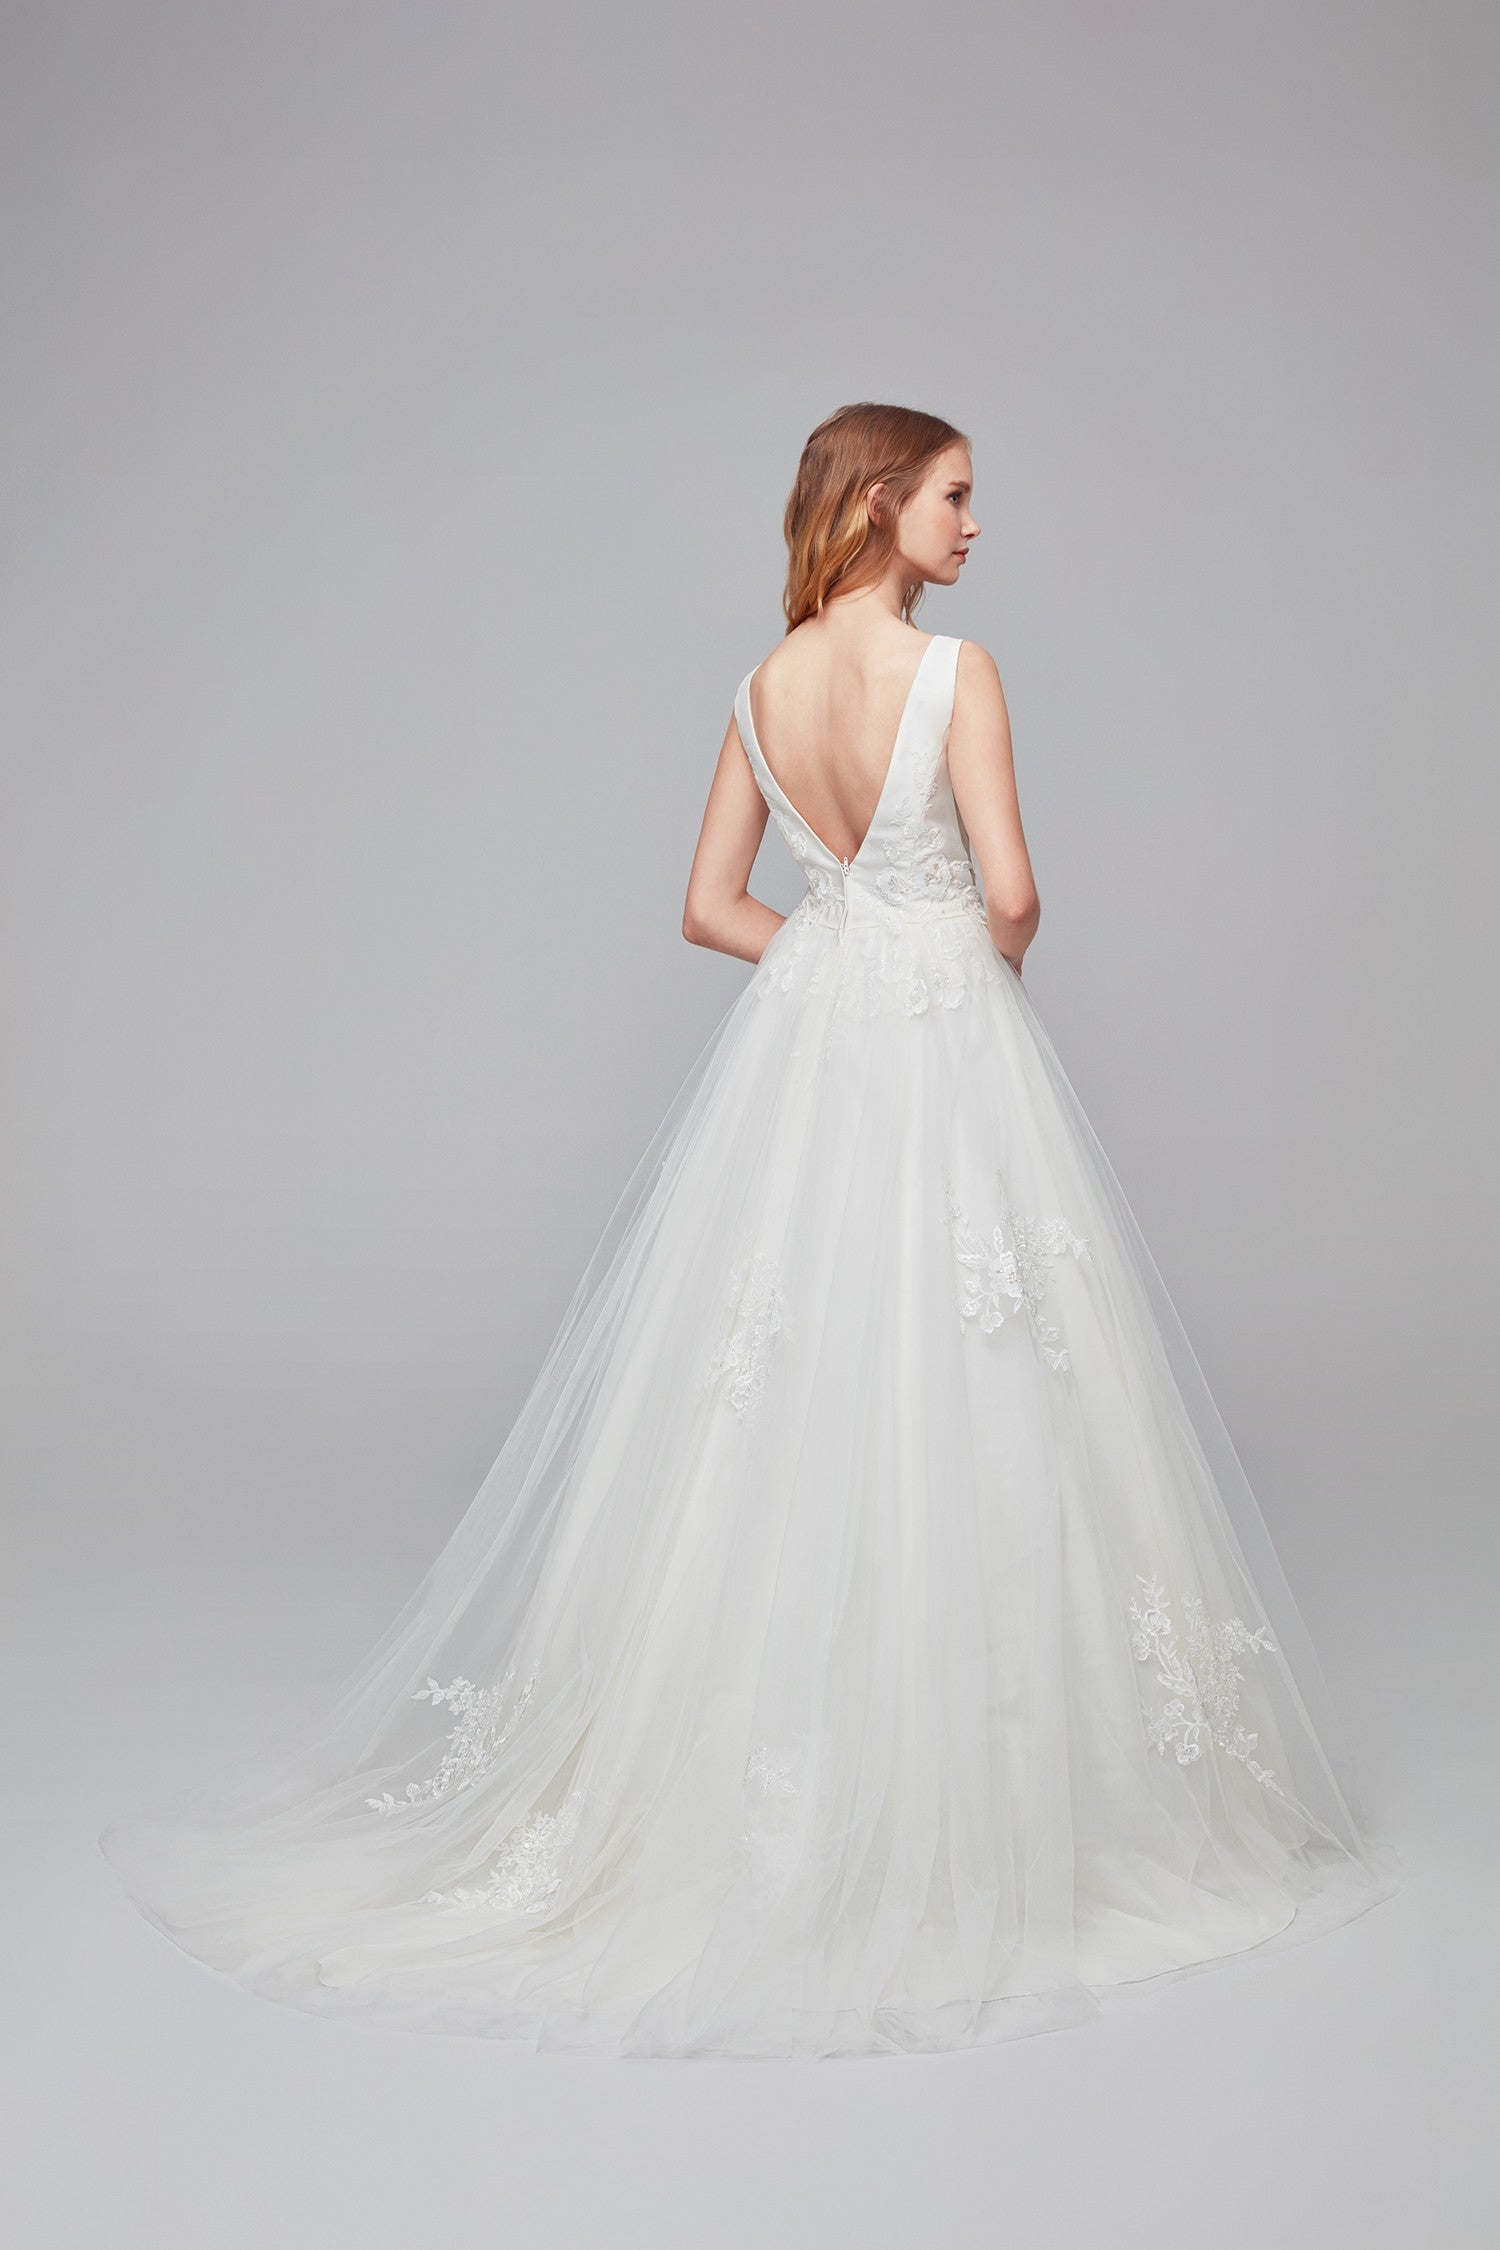 Mikado And Tulle V Neck Ball Gown Wedding Dress Wg3877